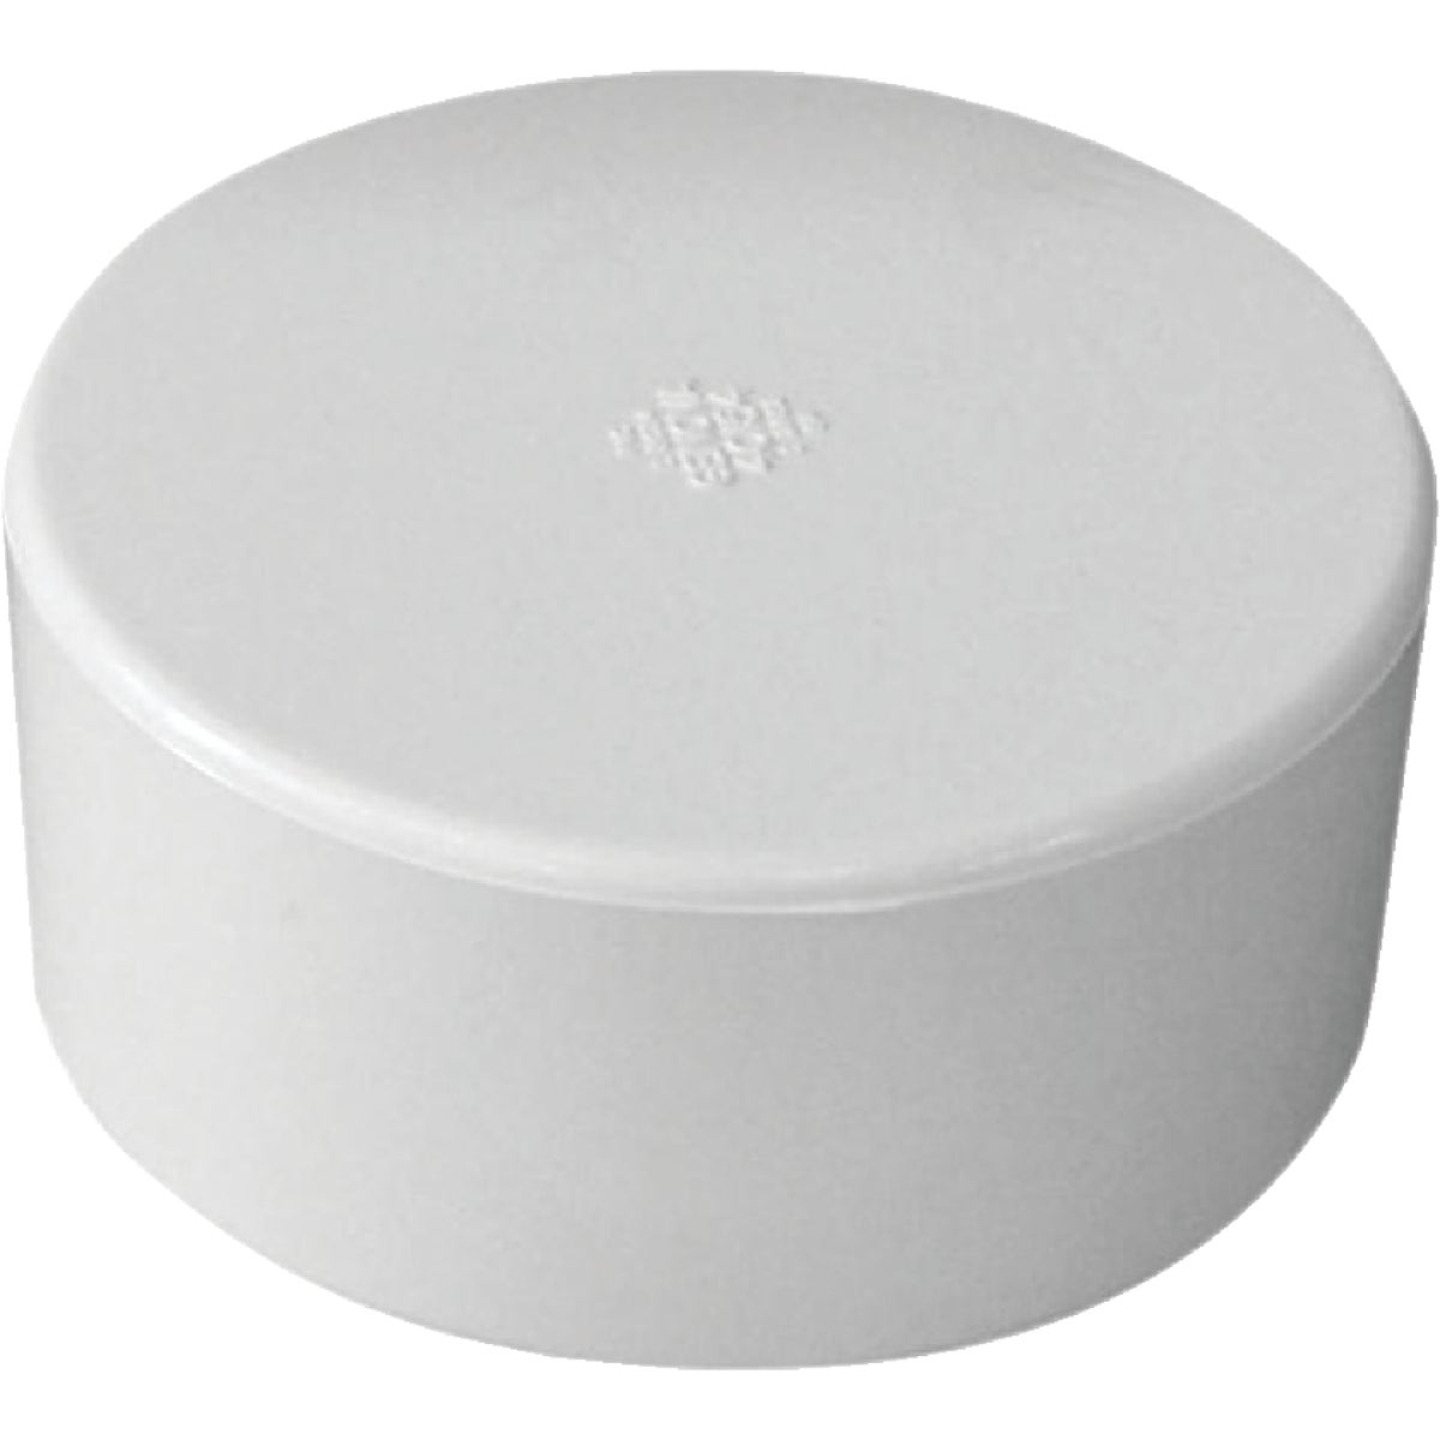 IPEX 3 In. PVC Sewer and Drain Slip Cap Image 1